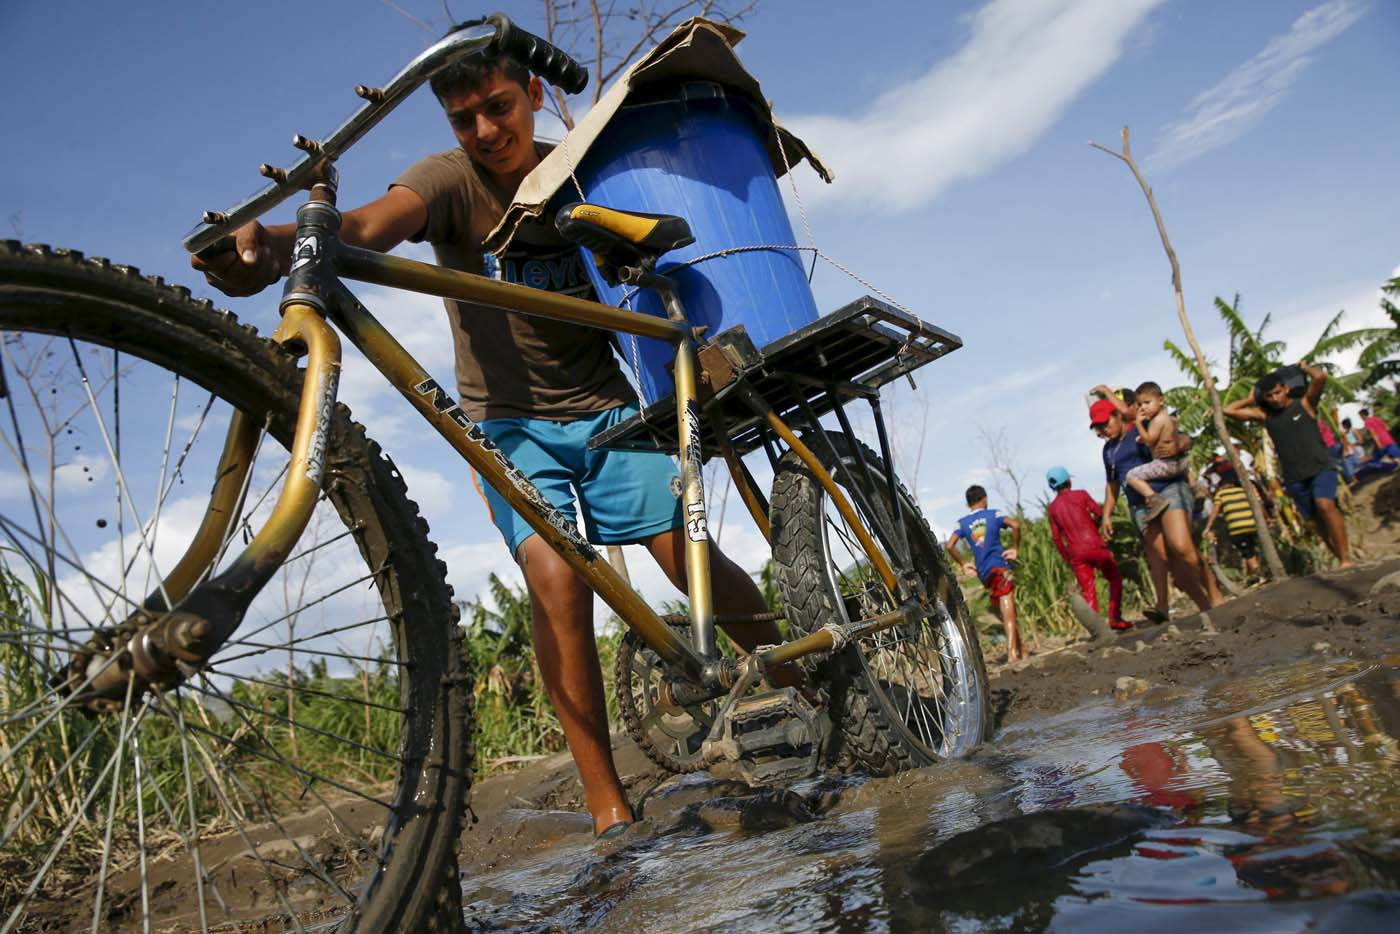 A boy pushes his bicycle loaded with a bucket across a dirt track next to people carrying their belongings, across to Colombia through the Tachira river at San Antonio in Tachira state, Venezuela